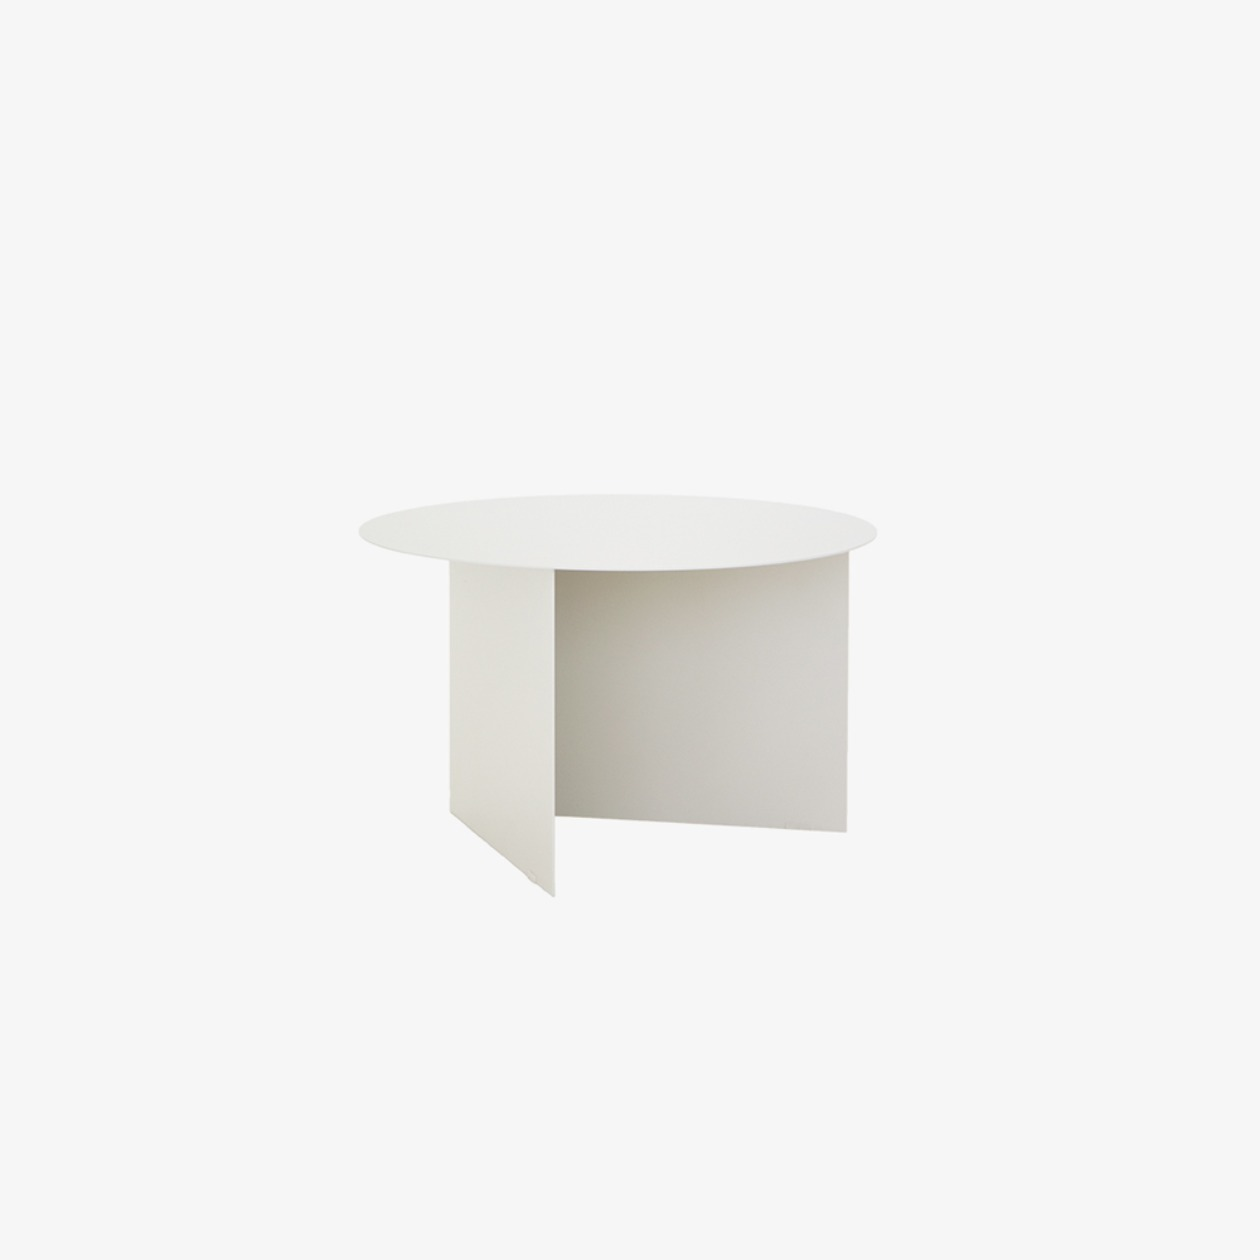 PLANE TABLE CIRCLE / BEIGE MISTAKE